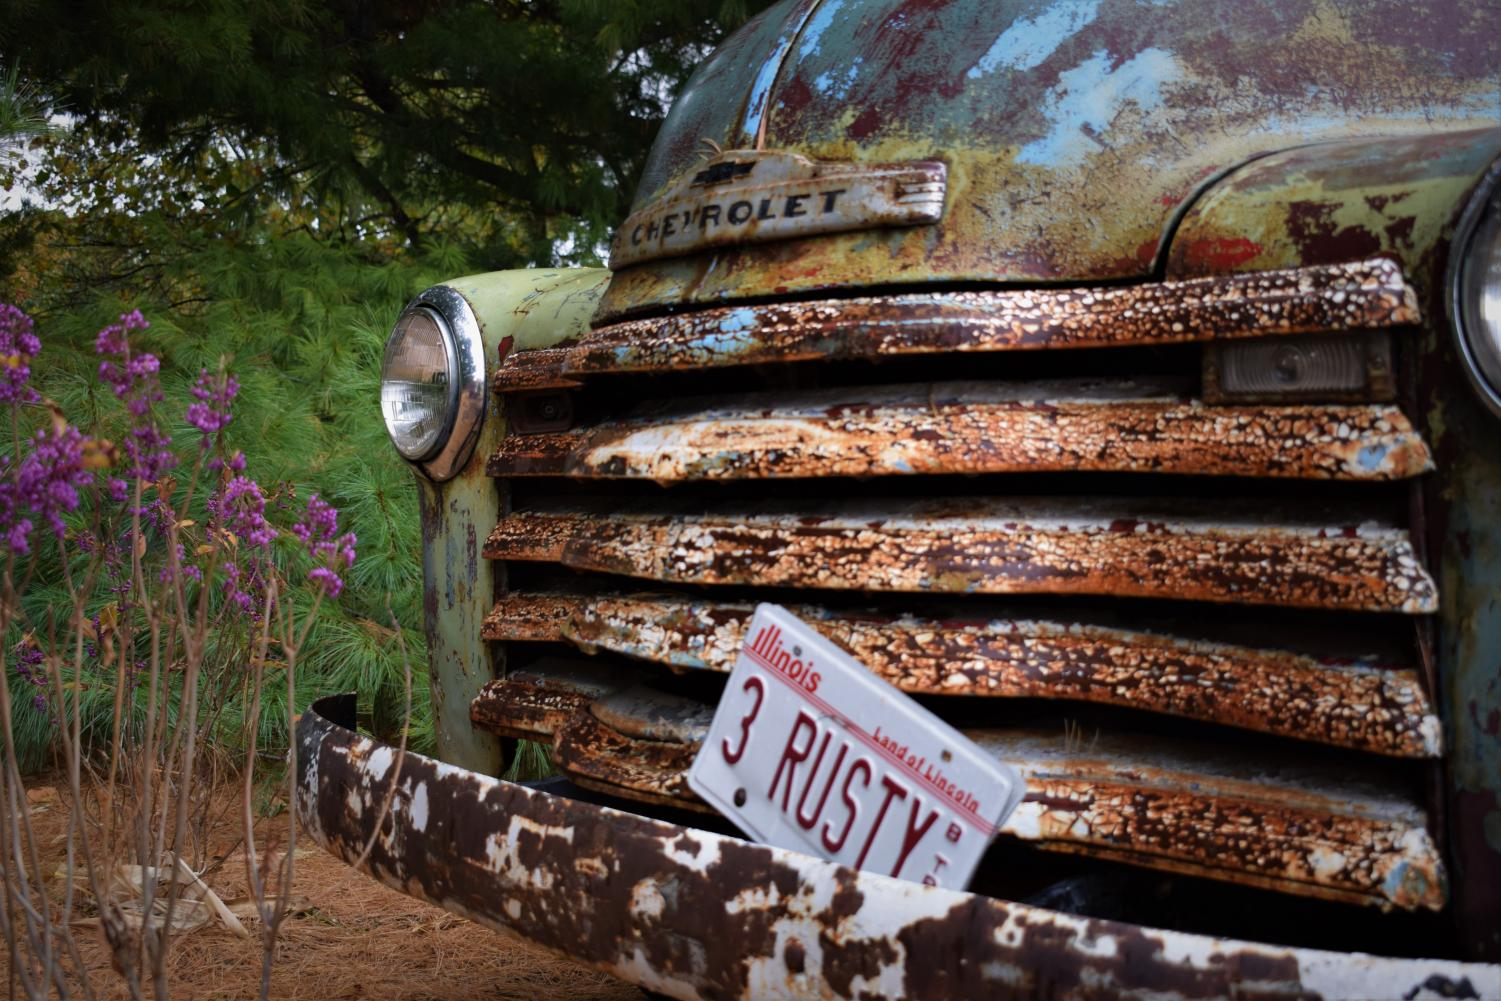 Infamous Rader Farms Chevy, commonly referred to as Rusty by employees. Located outside their shop, the truck has attracted a lot of attention.